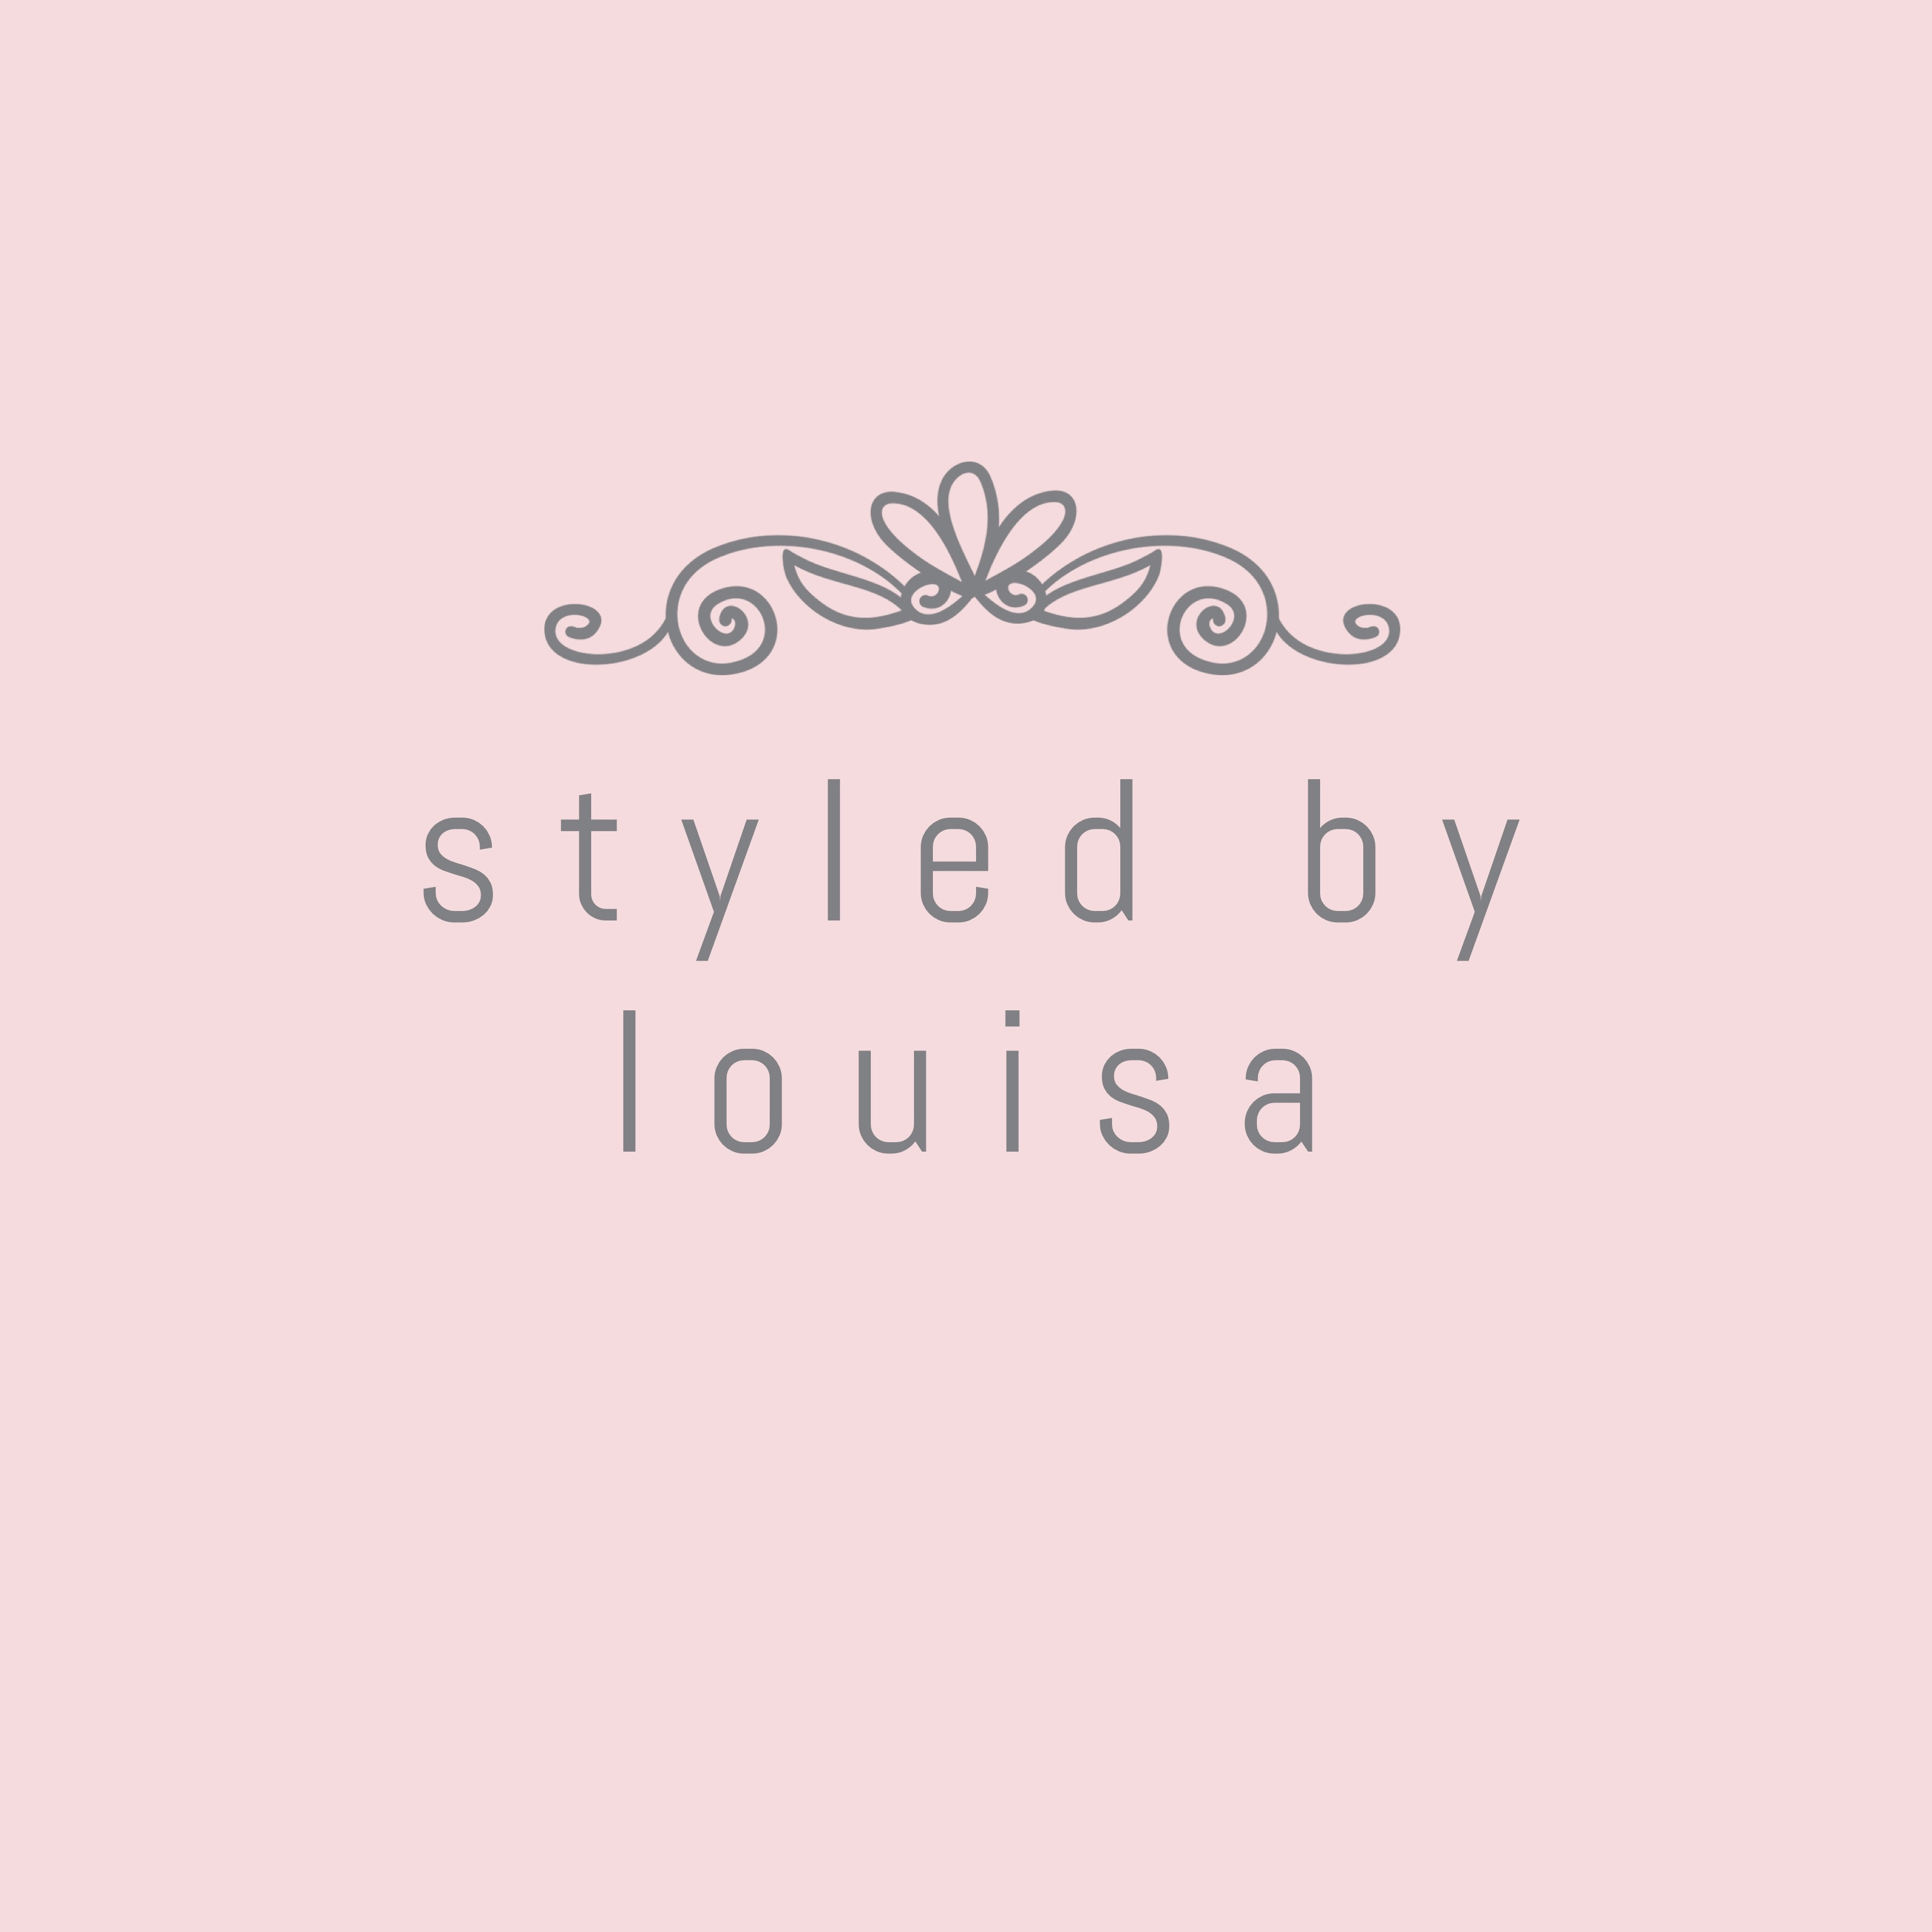 Style by Louisa